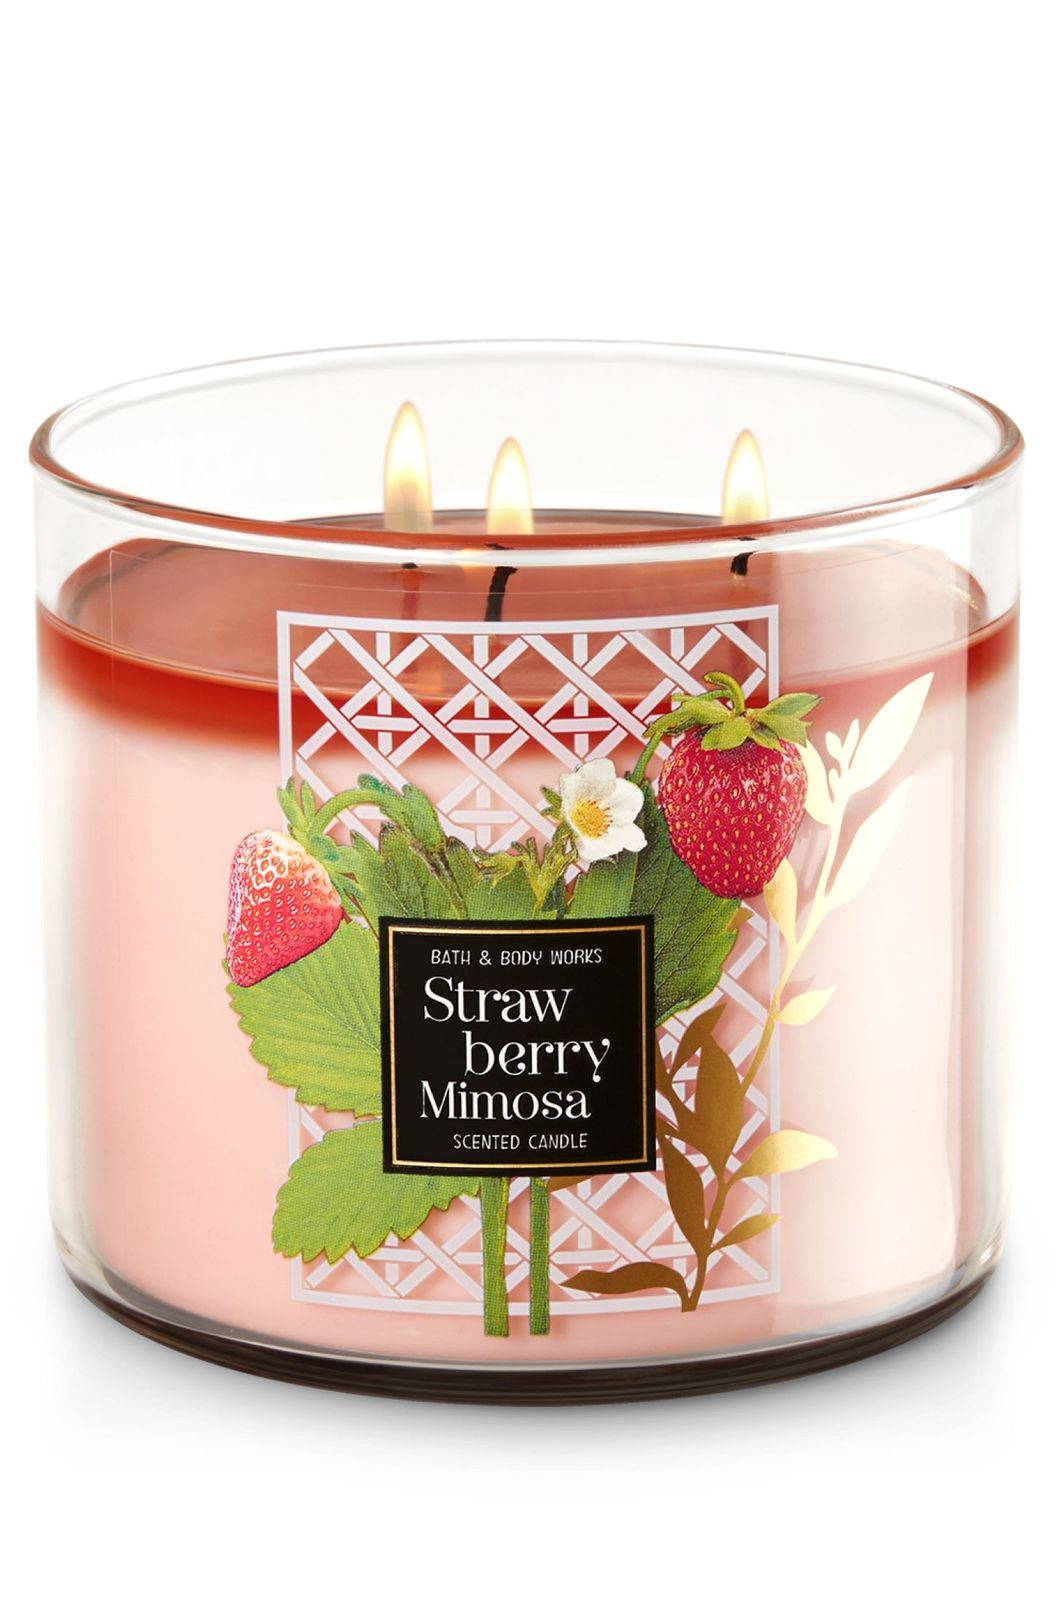 2x  Bath & Body Works Strawberry Mimosa 3 Wick Scented Candle with Lid 14.5 oz  image 2